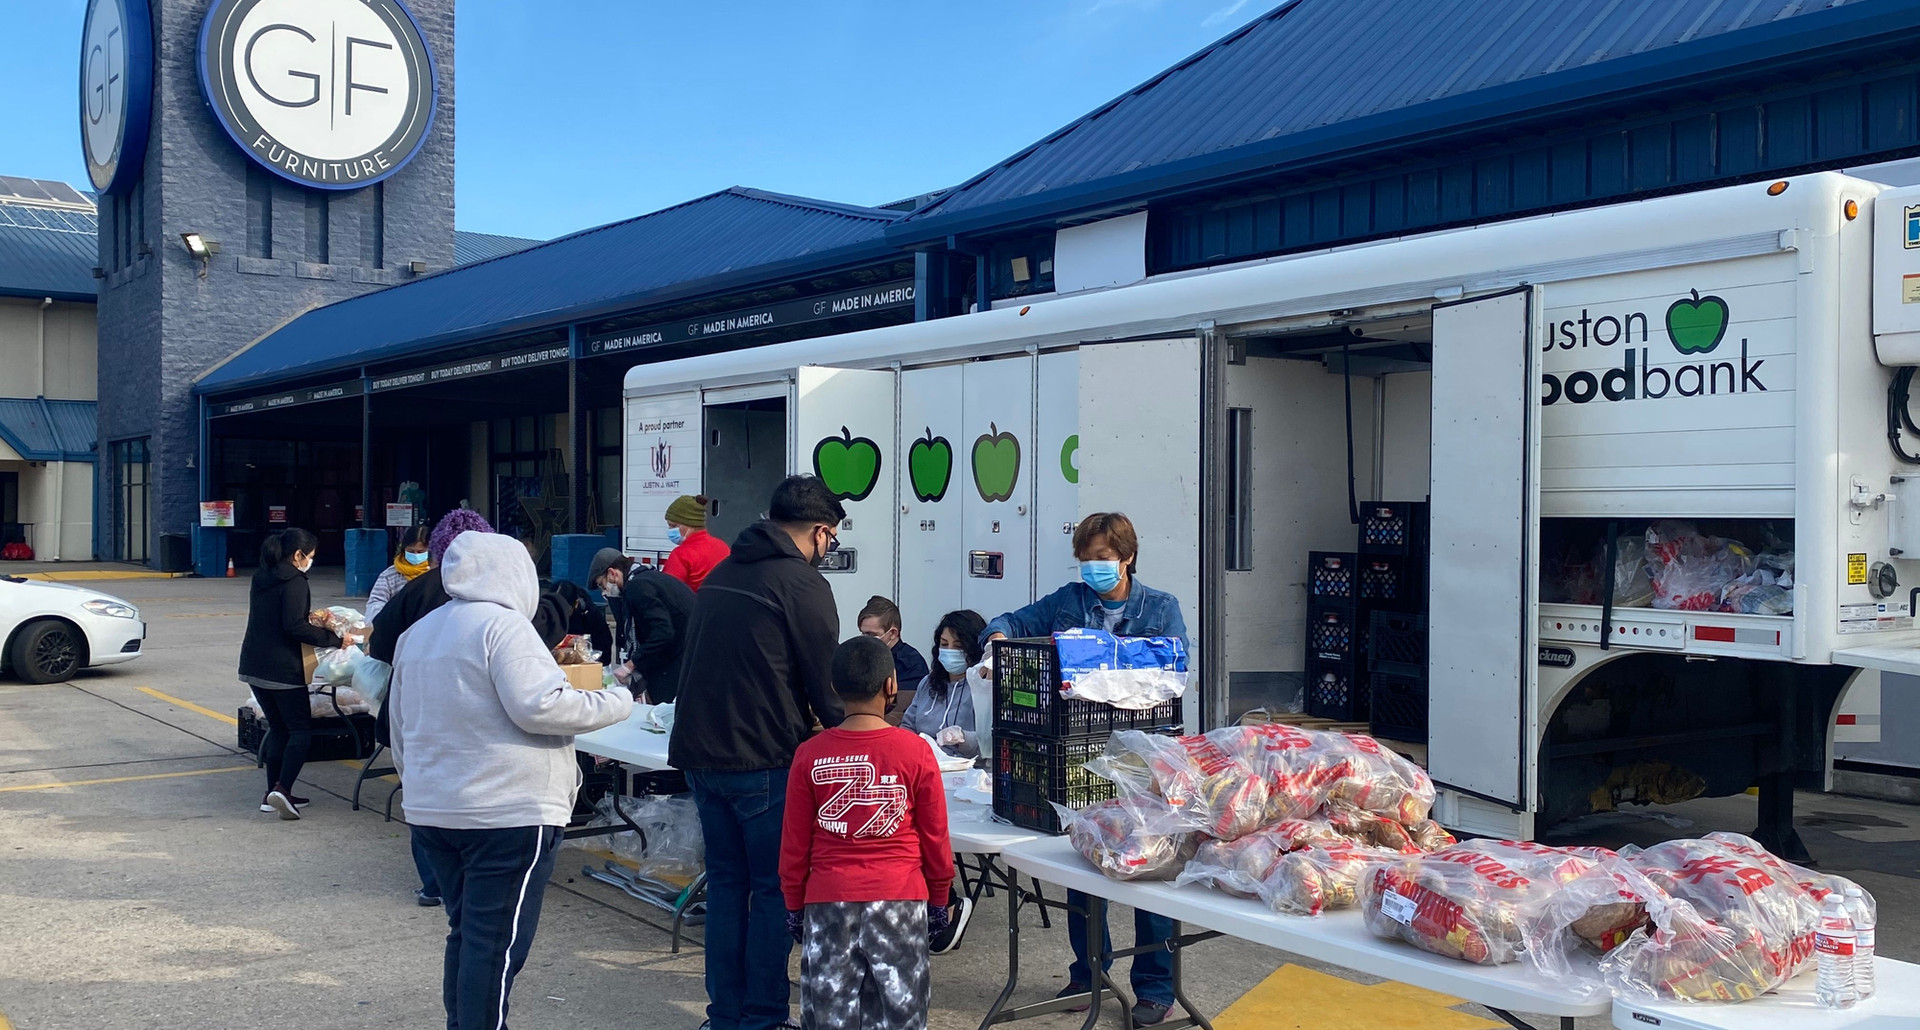 Houston food bank mobile pantry at Gallery Furniture